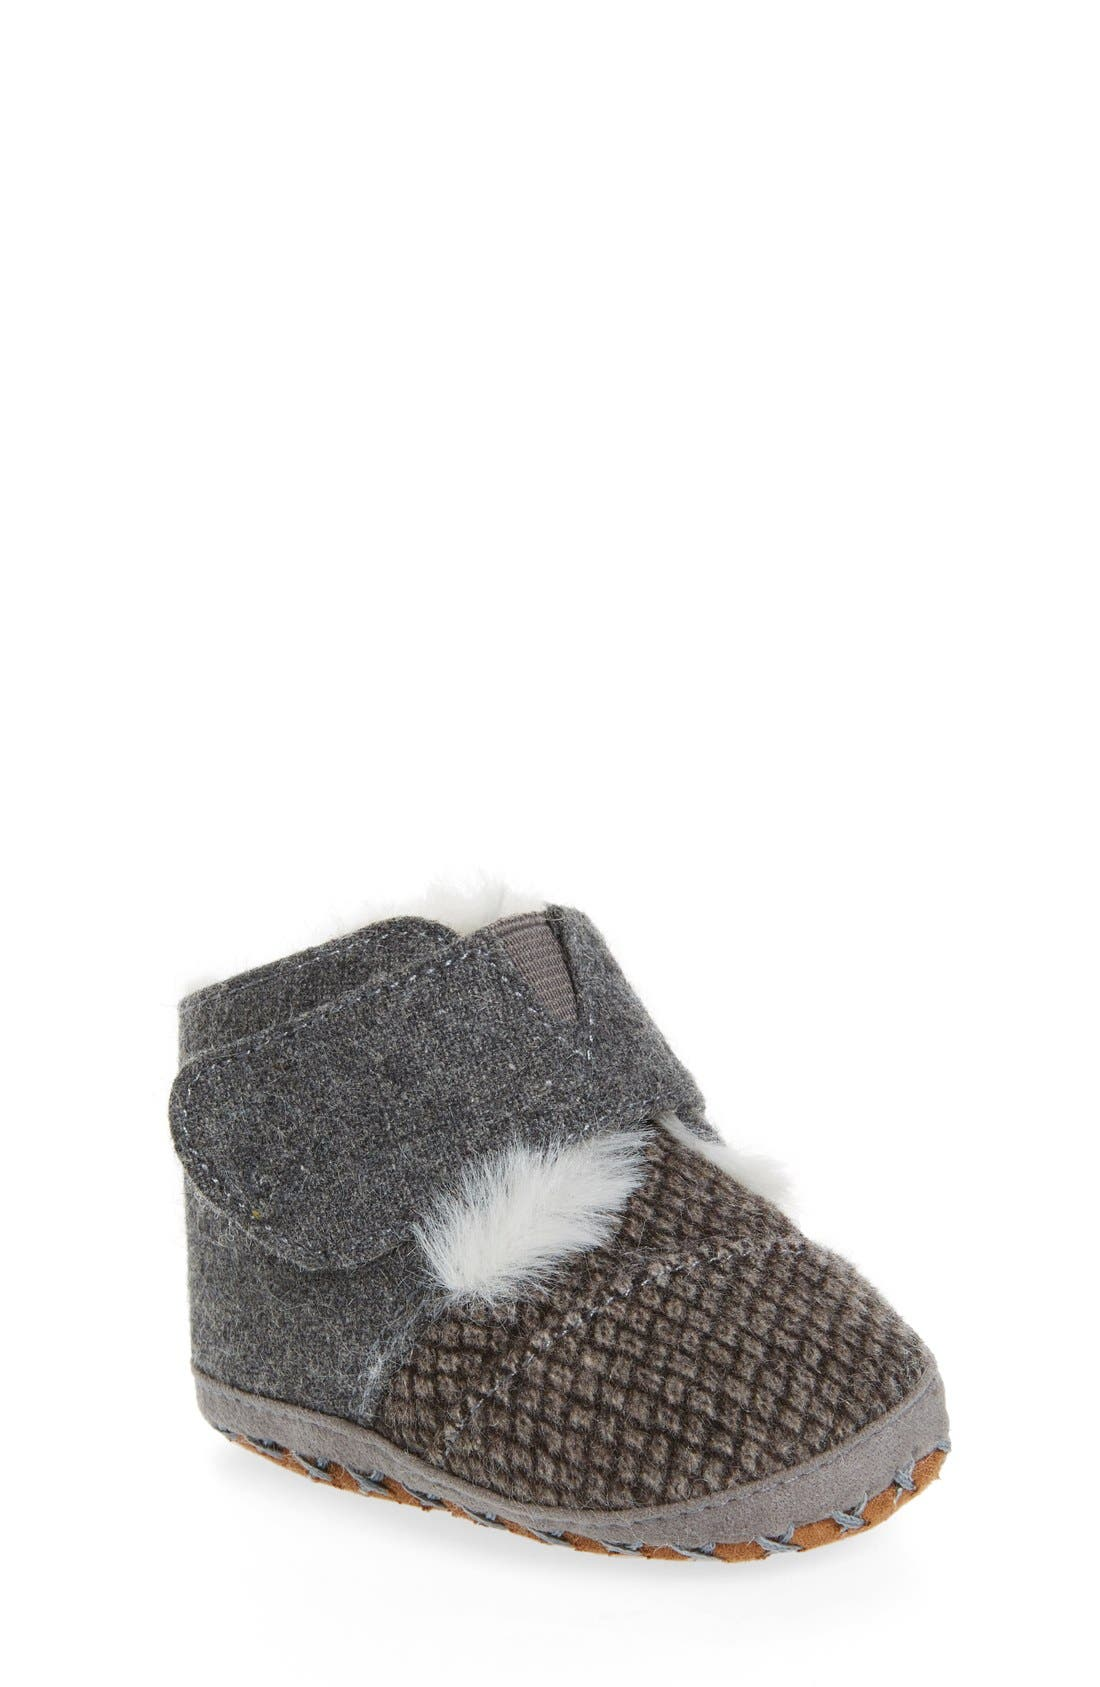 Alternate Image 1 Selected - TOMS Cuna Crib Shoe (Baby)